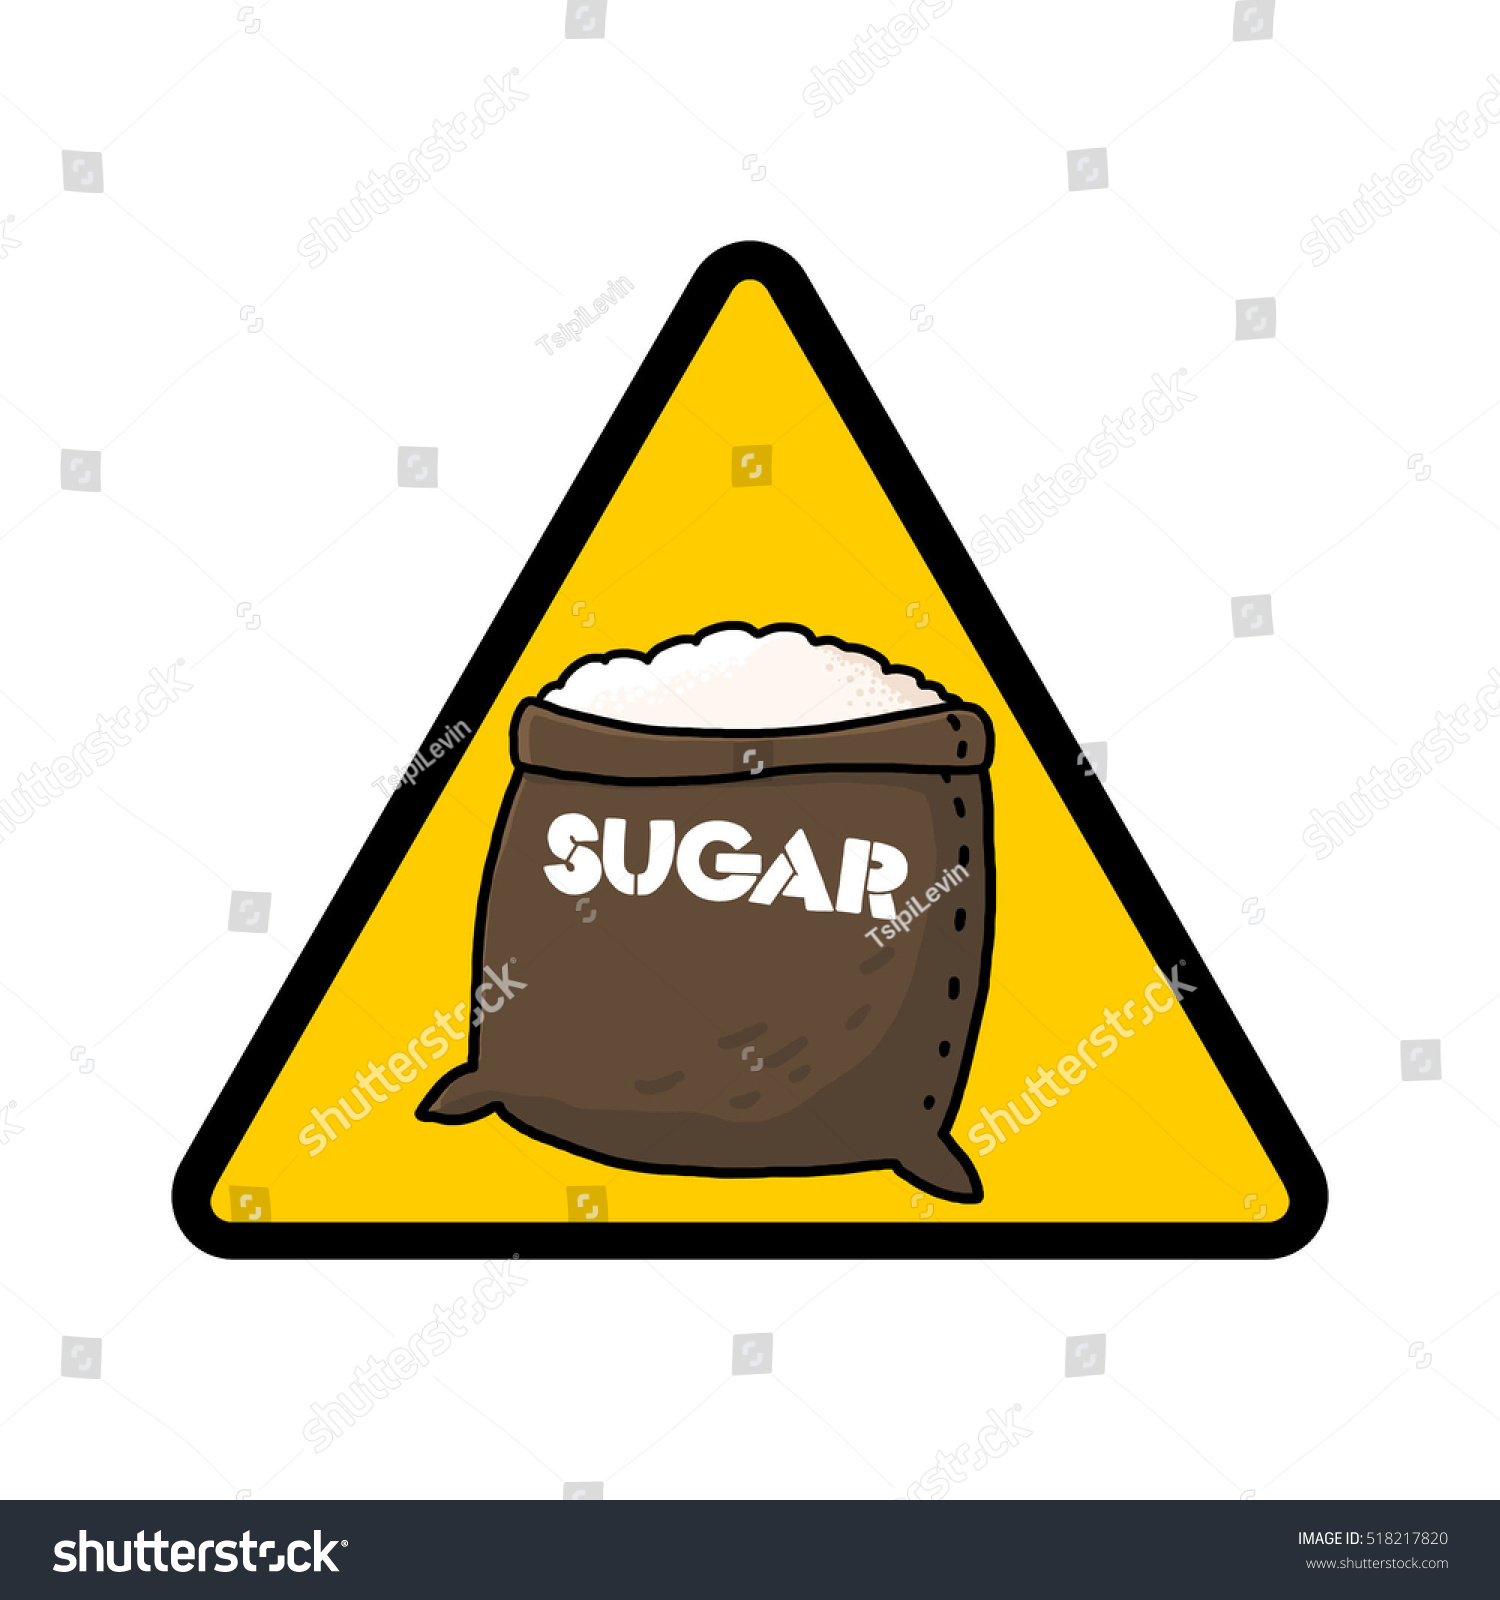 Sugar Warning Sign Caution Symbol Sugar Stock Illustration 518217820